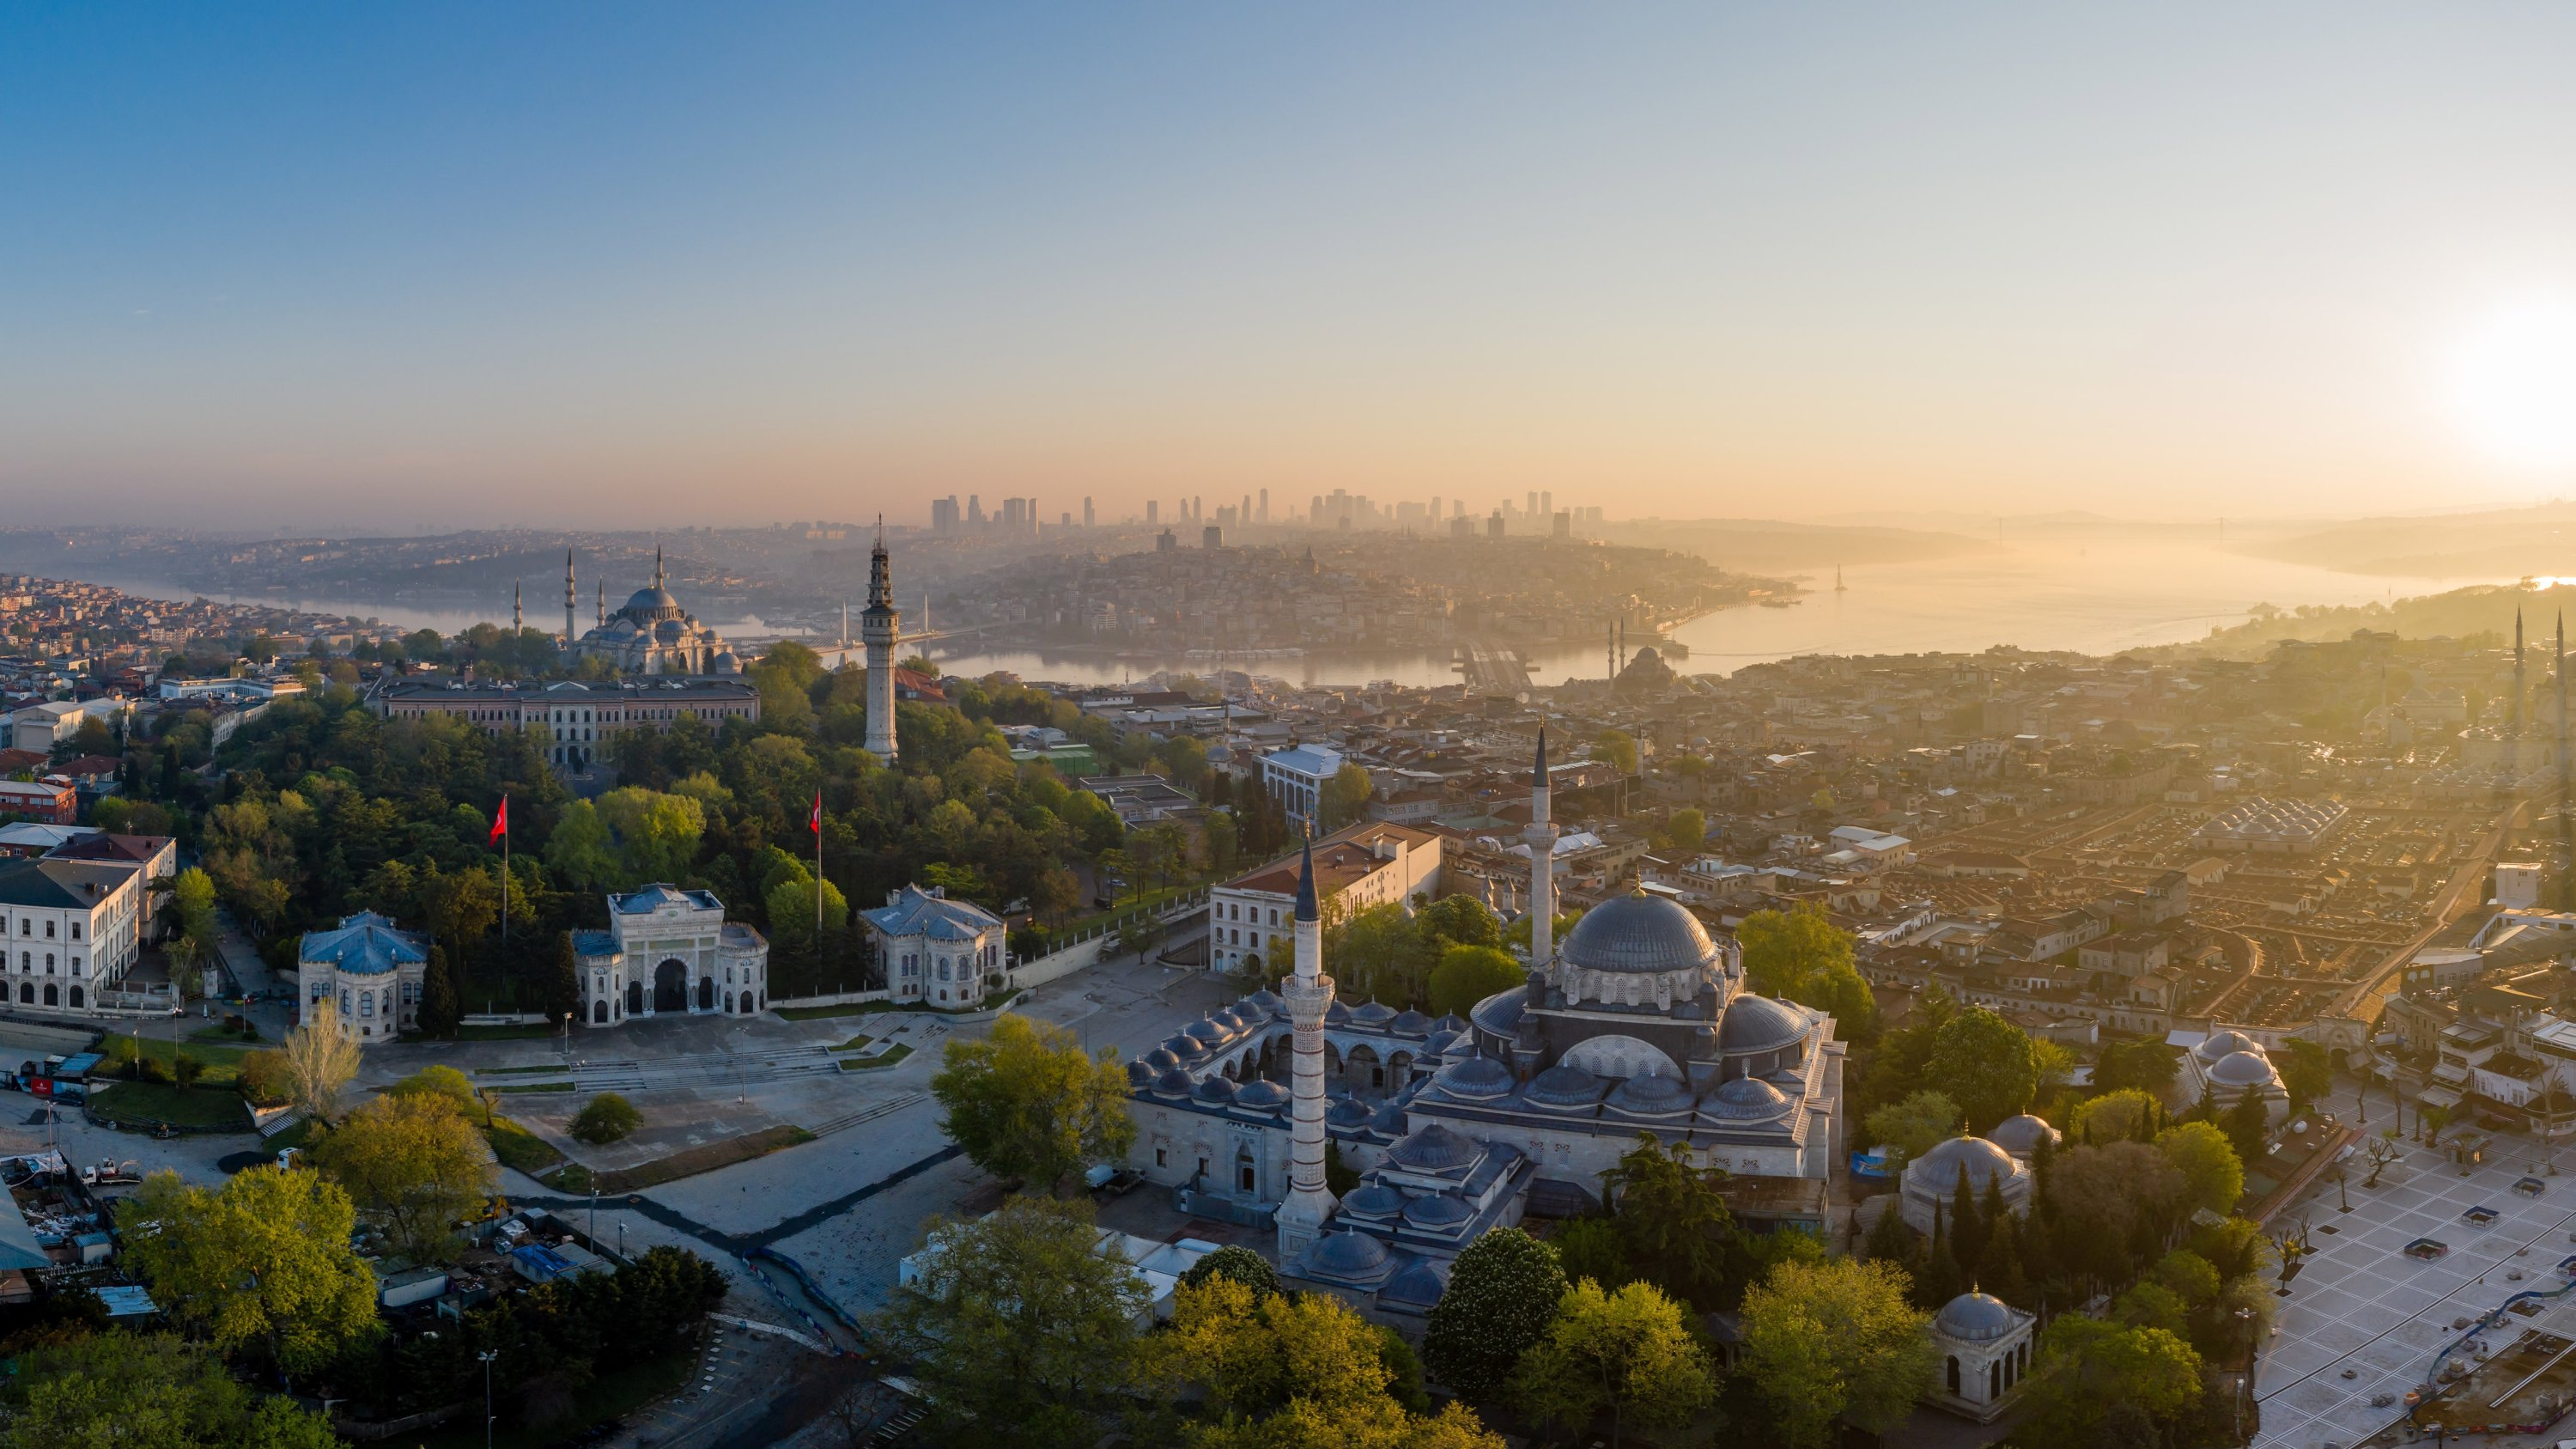 An aerial view of Beyazıt Square with the Bayezid Mosque Complex on the right and the Bayezid entrance gate of Istanbul University on the left. (Shutterstock Photo)